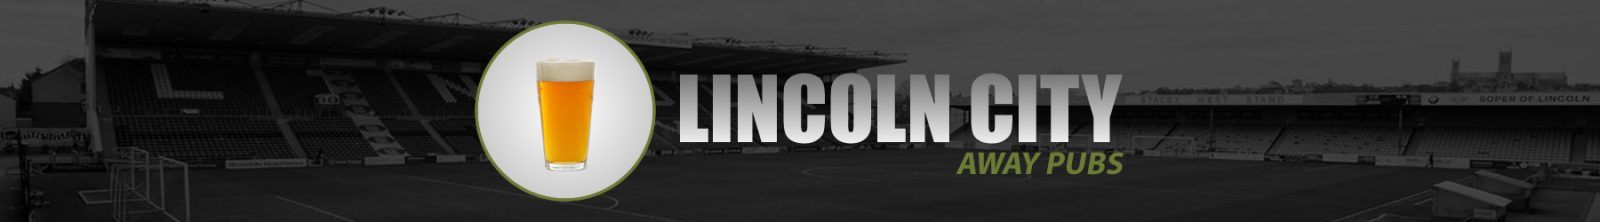 Lincoln City Away Pubs